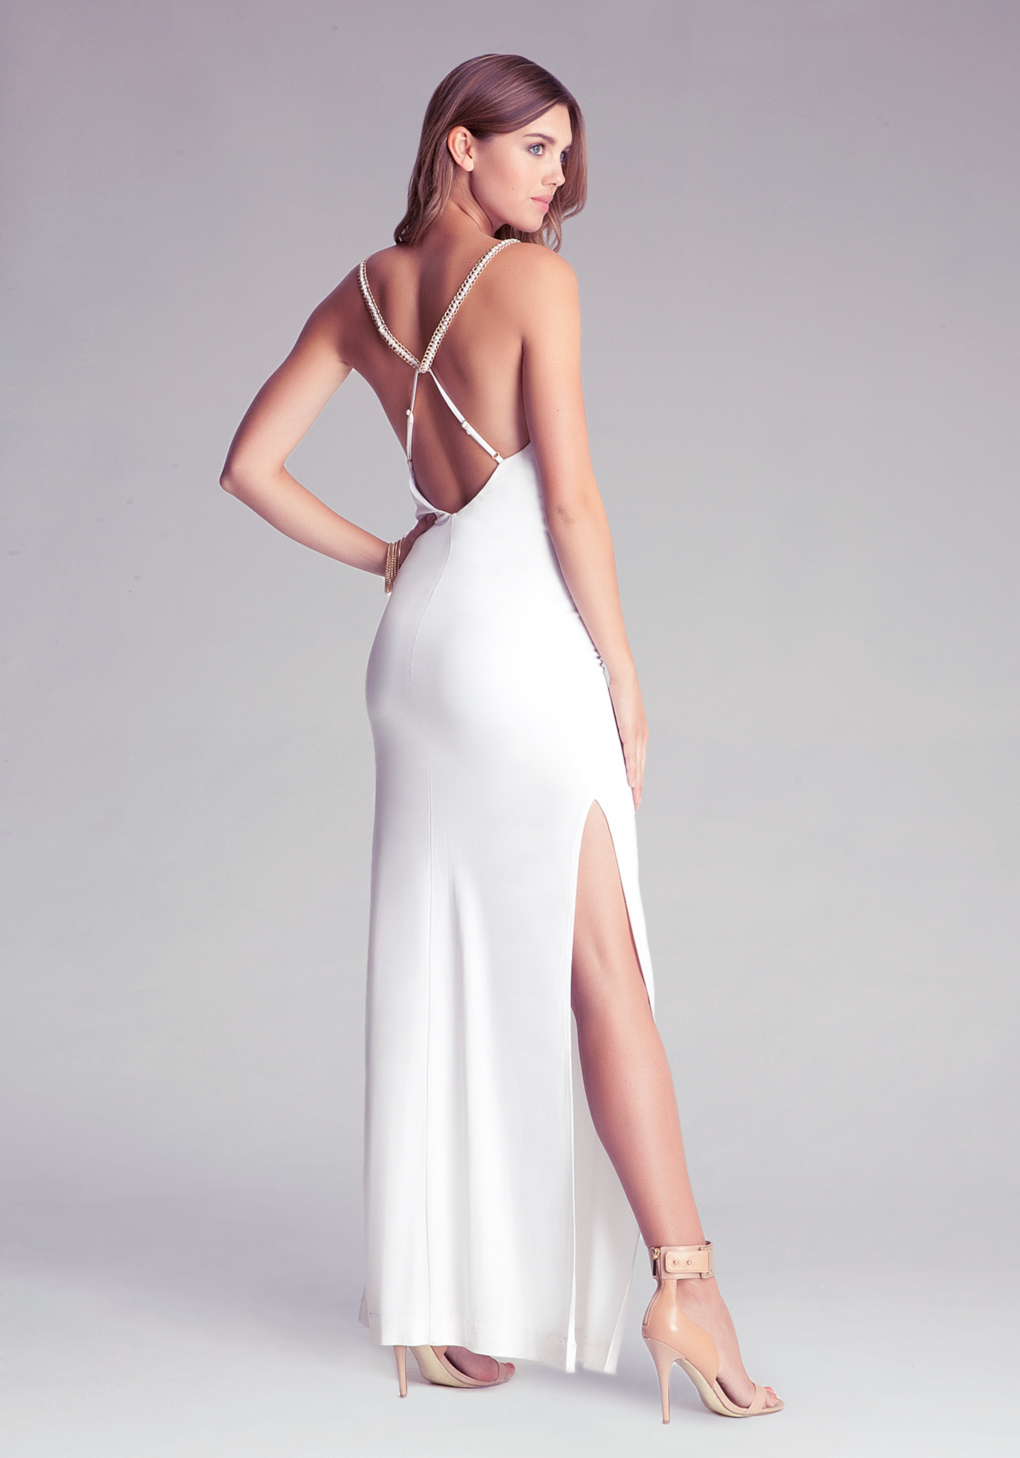 Lyst - Bebe Long Cowl Neck Dress in White